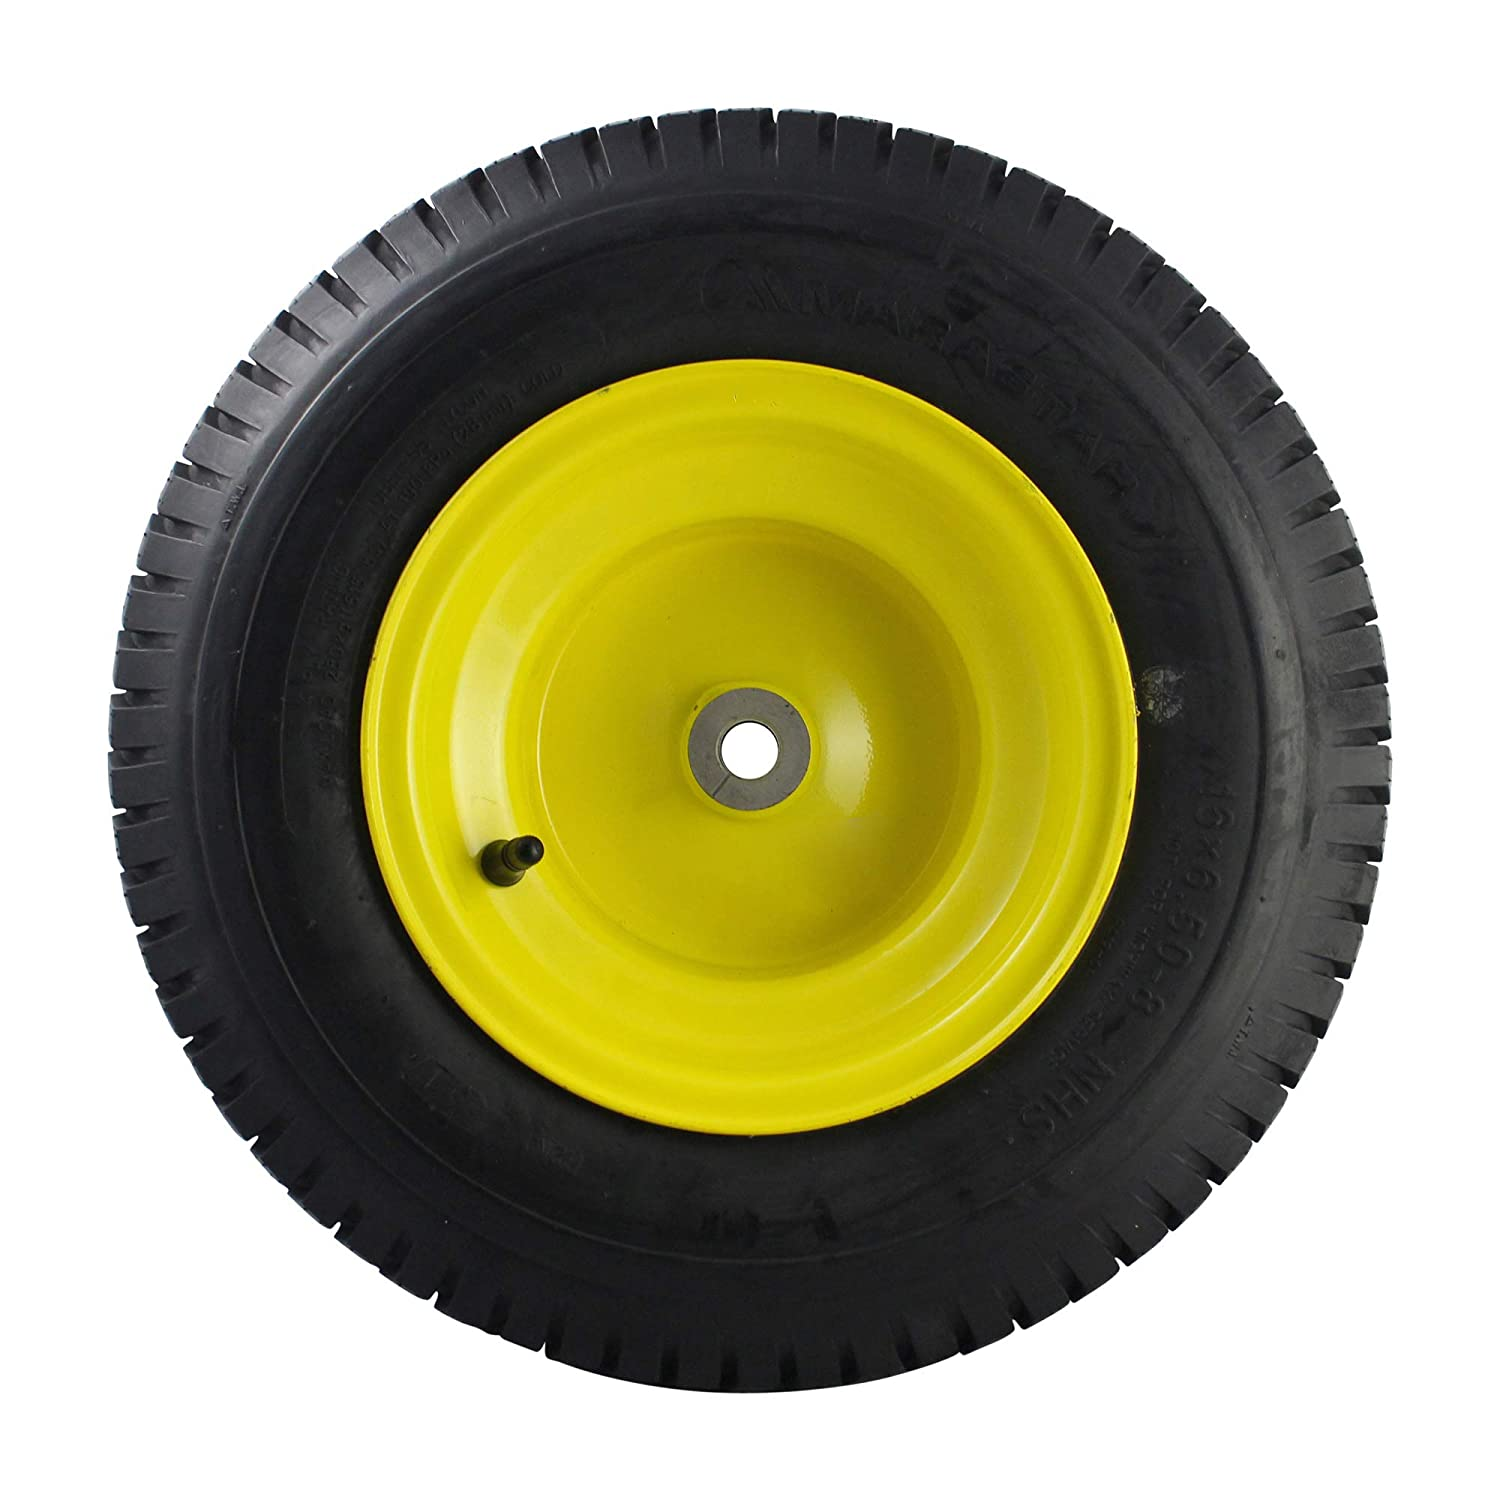 MARASTAR 21456 16x6.50-8 Front Tire Assembly Replacement for John Deere Riding Mowers